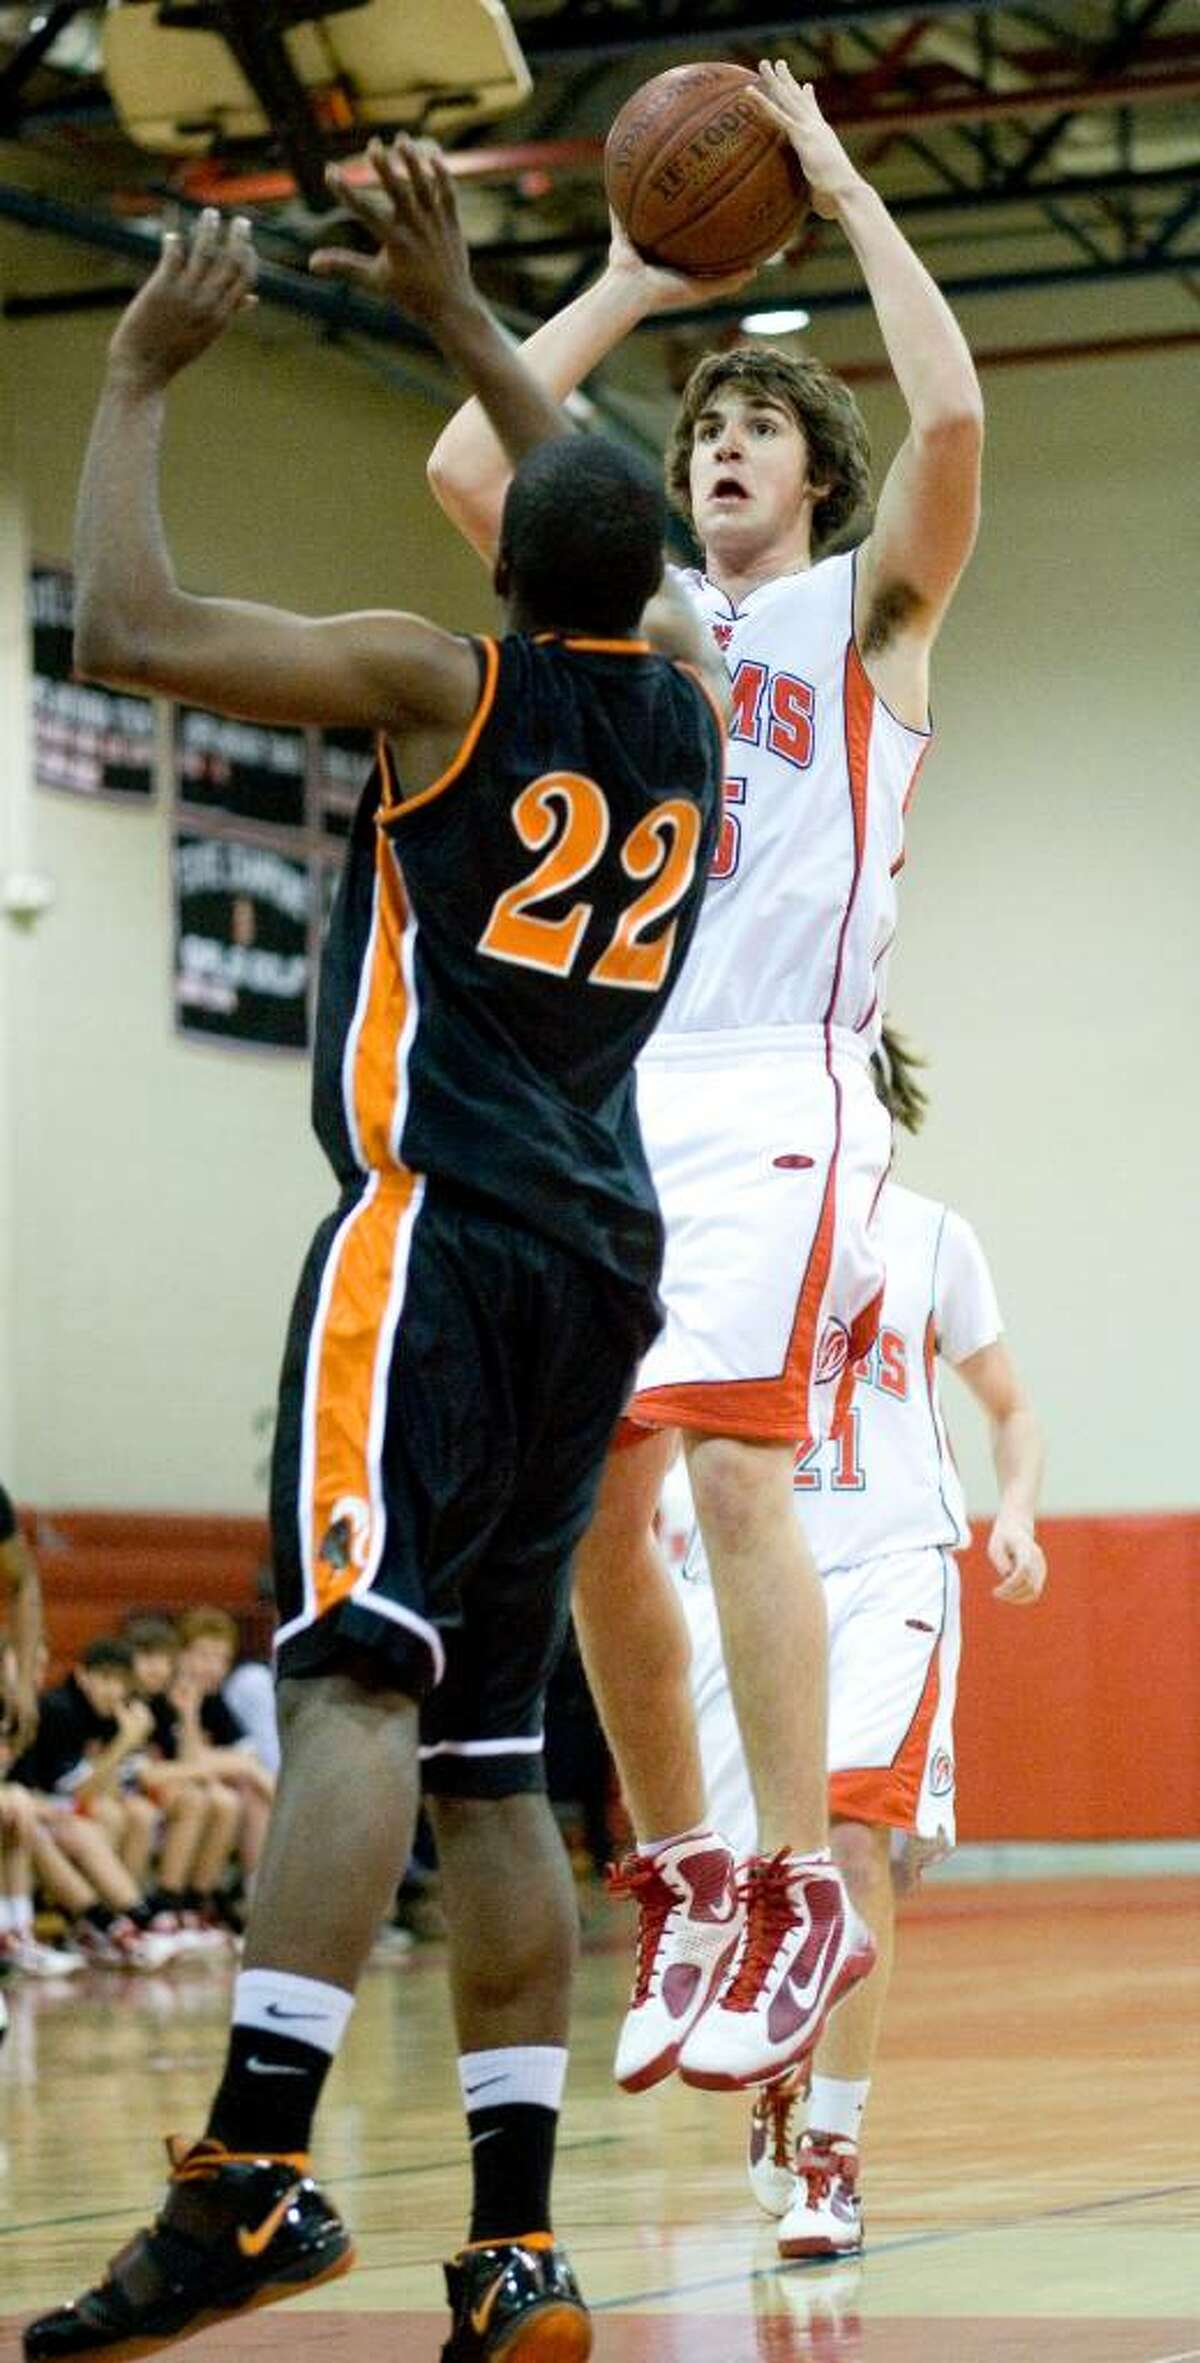 Stamford High School plays New Canaan High School in boys basketball in New Canaan.